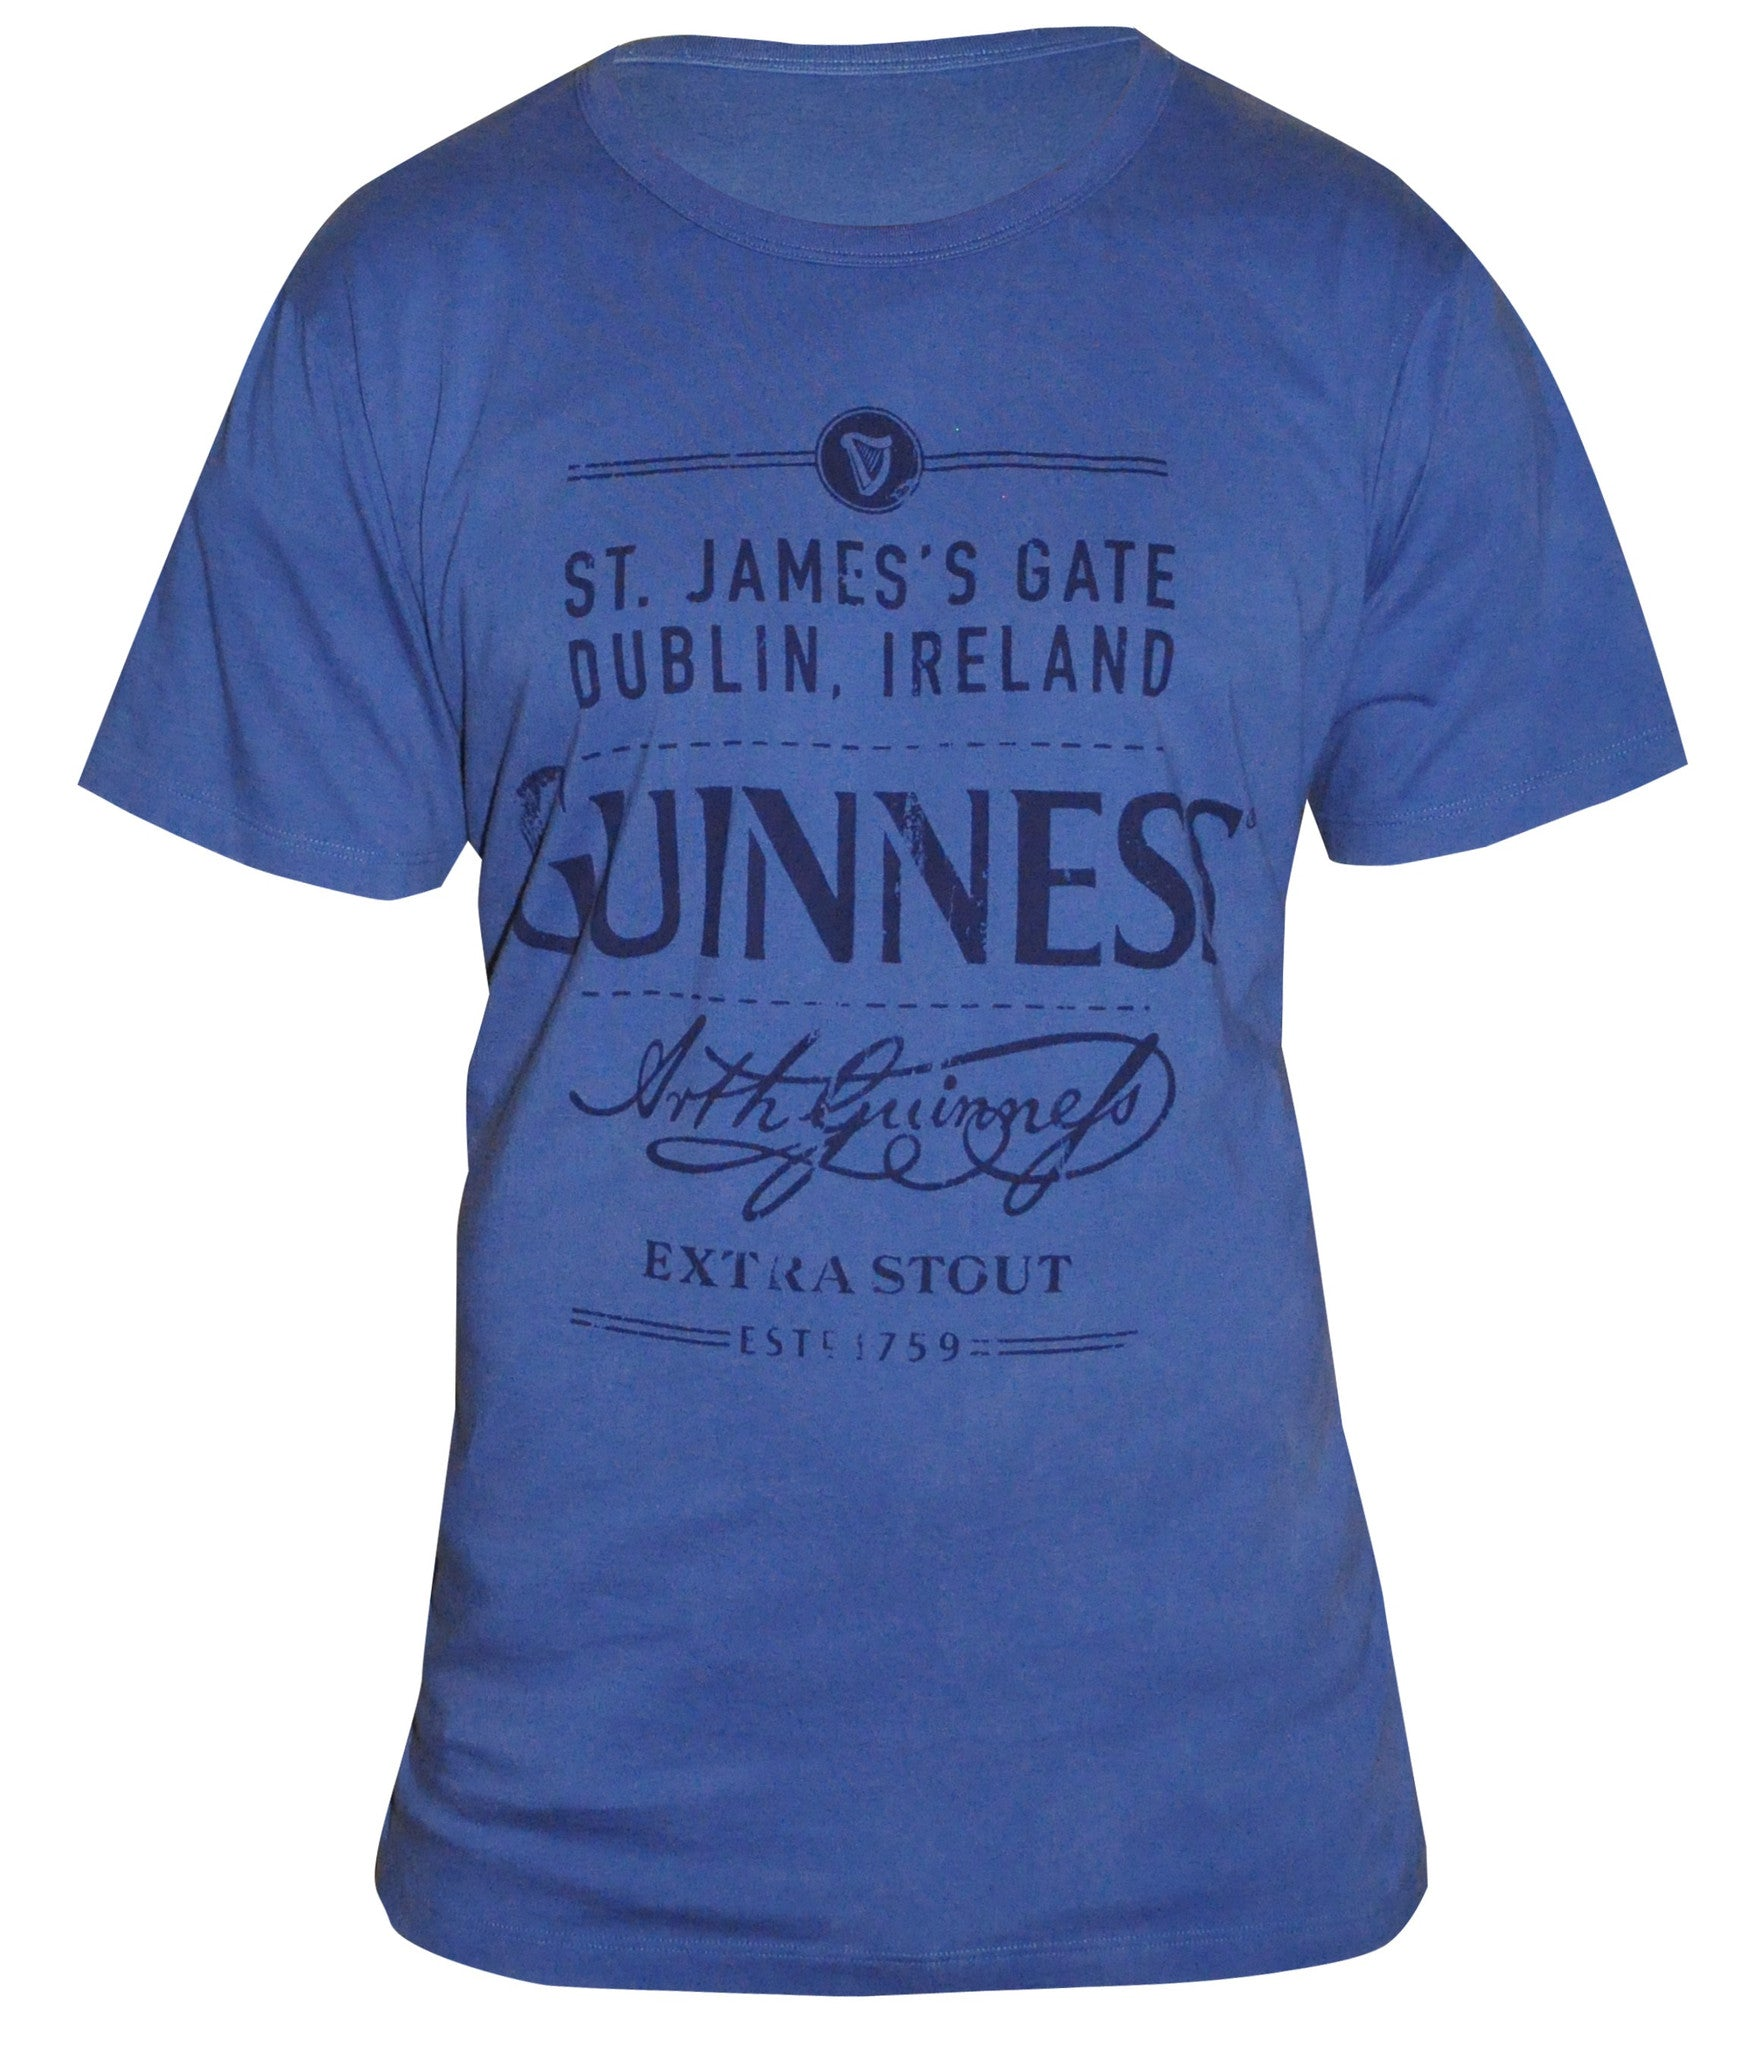 Guinness Blue Vintage Distressed Tee - G6062